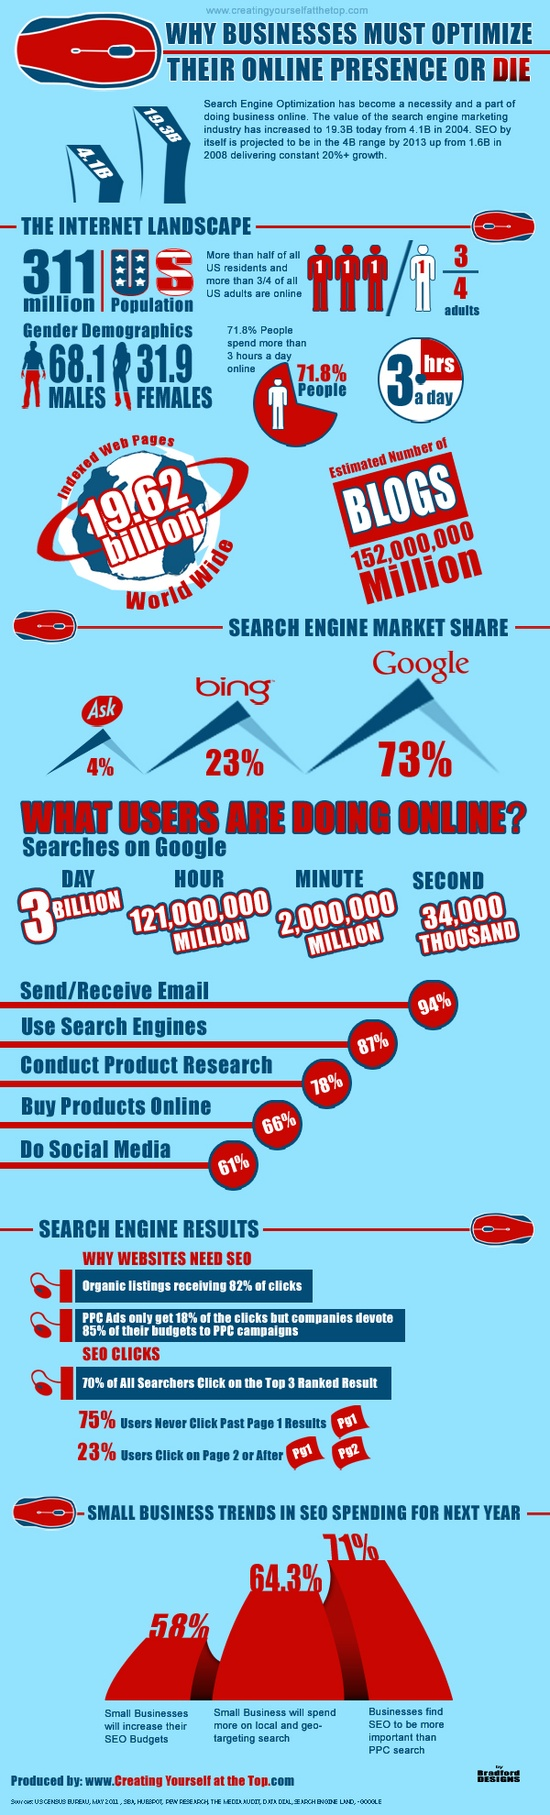 Why businesses must optimise their online presence